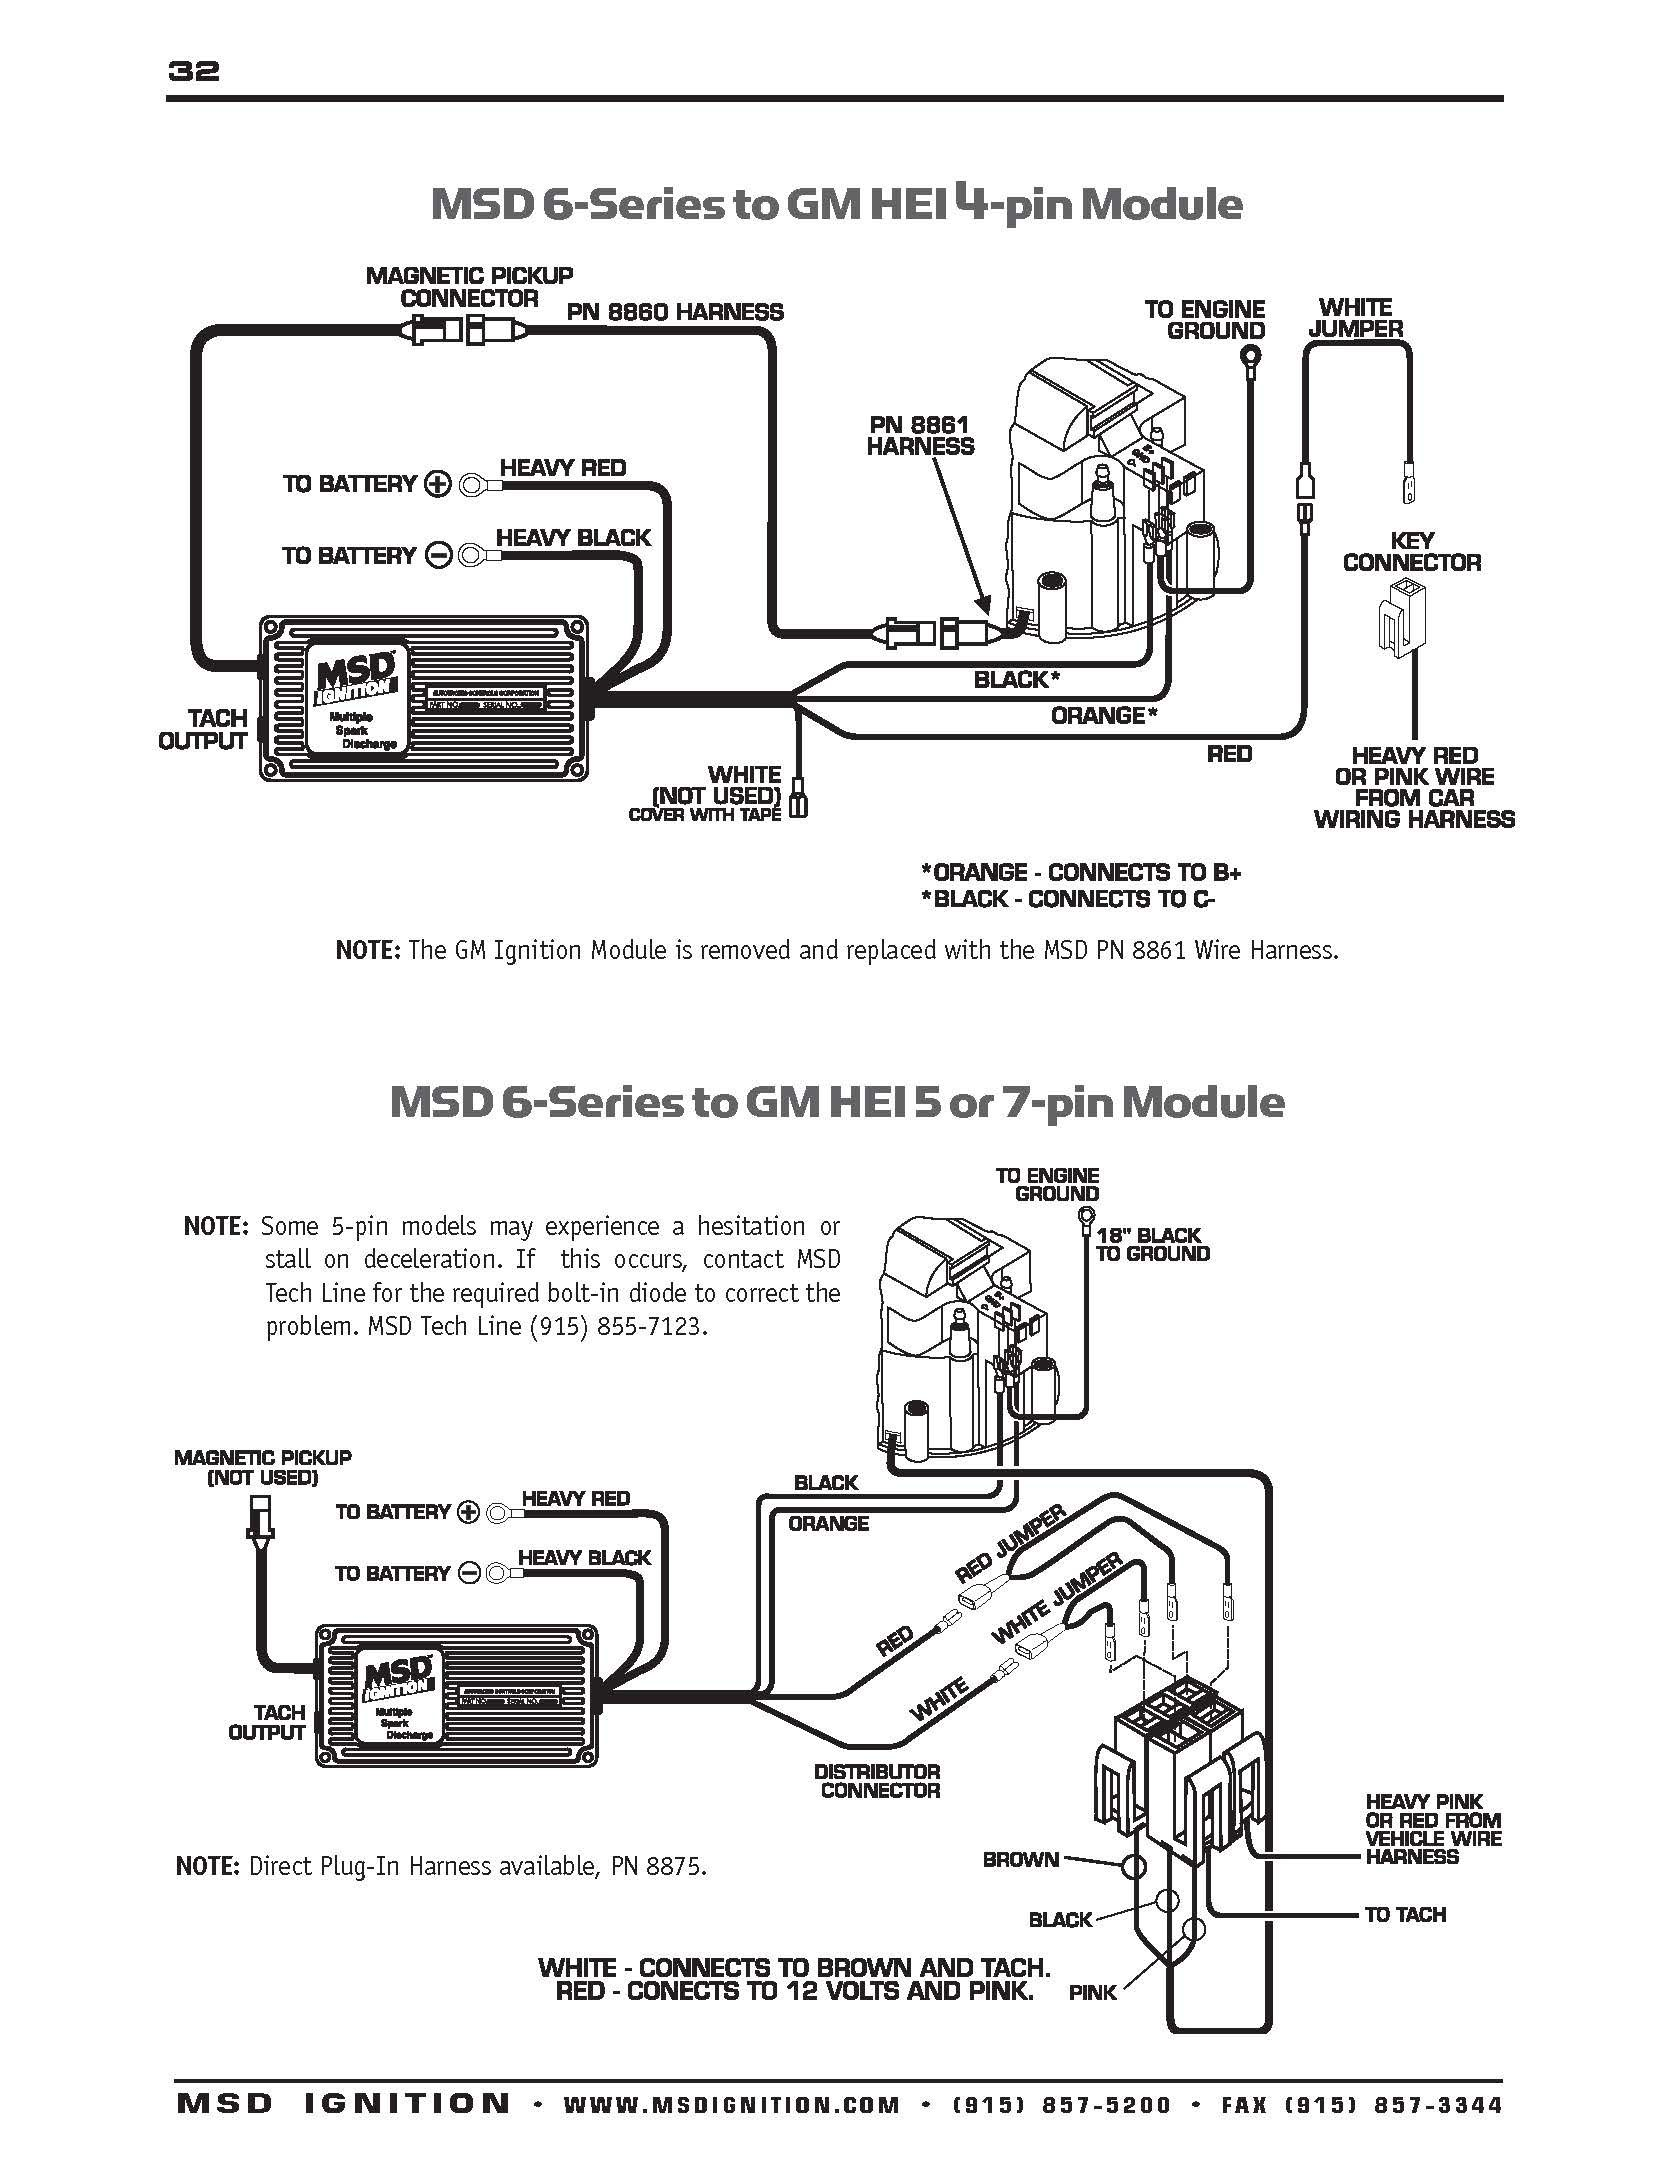 74 vw wiring diagrams automotive wiring diagram centreignition wire diagram wiring diagram for youmsd ignition wiring [ 1675 x 2175 Pixel ]